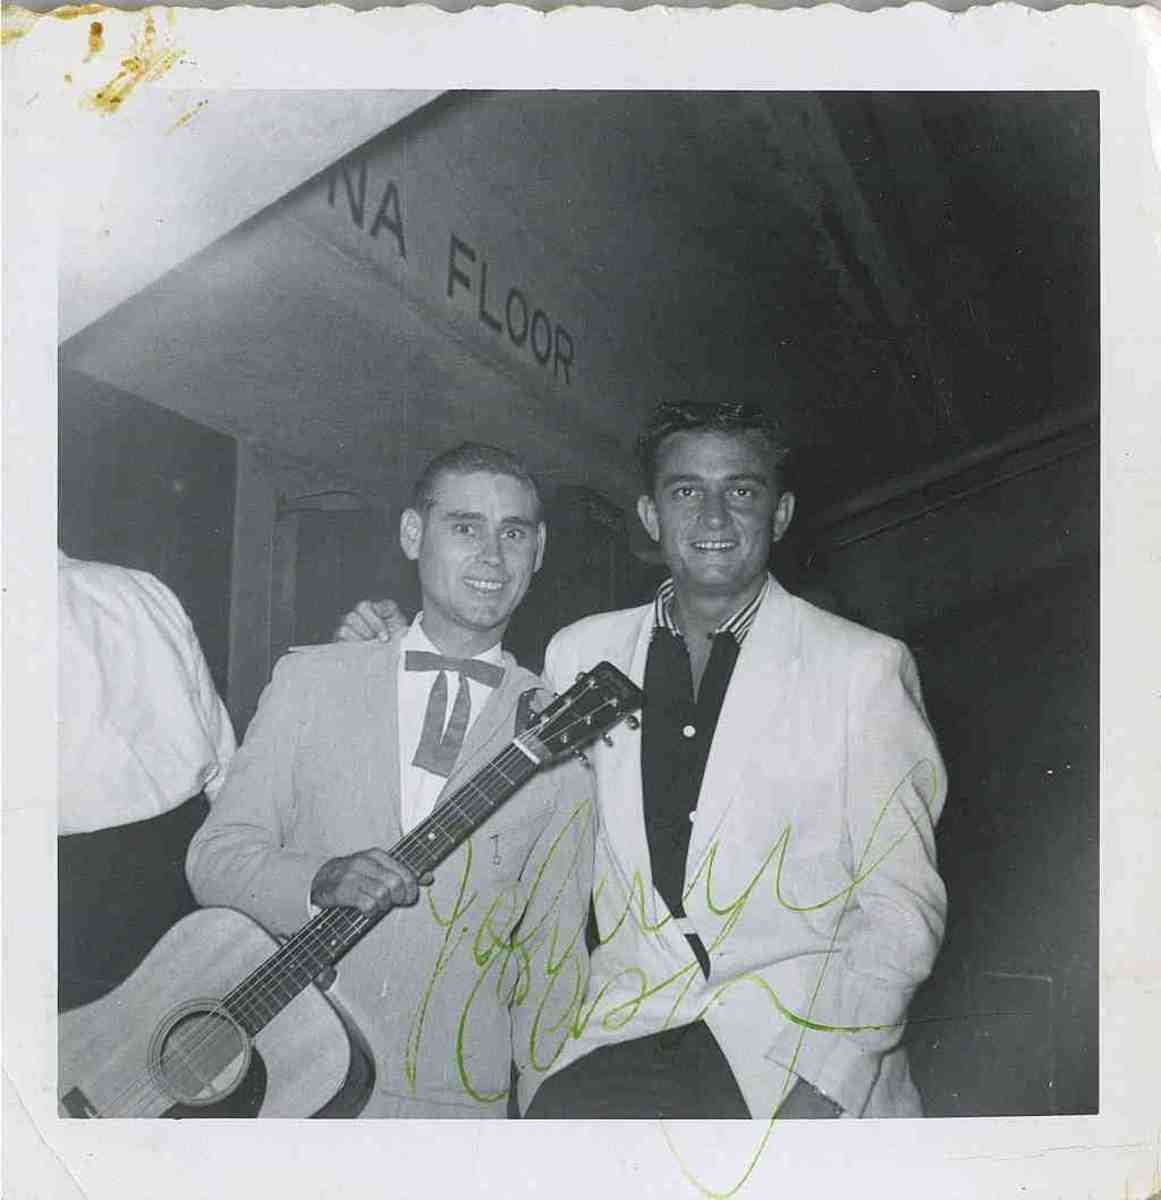 George Jones with Johnny Cash. Photo by George Kealiher, Jr., courtesy of the CMHOF.